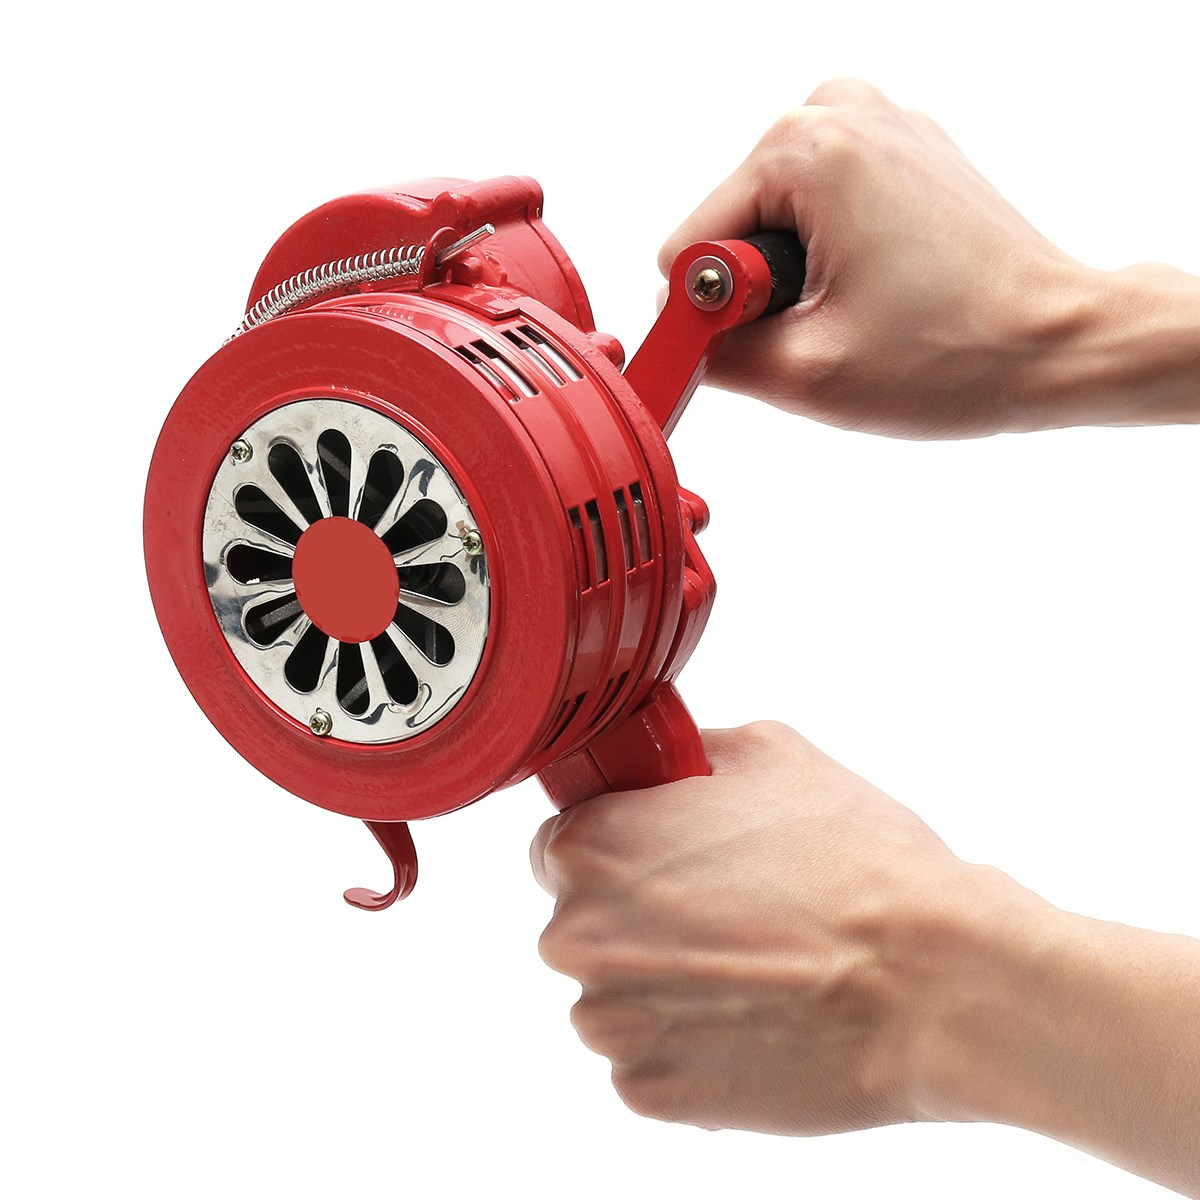 FGHGF 4.5 Red Aluminium Alloy Handheld Manual Operated Security Alarm Air Raid Siren Portable Safety Alarm Siren Red ac110v 160db motor driven air raid siren metal horn industry boat alarm